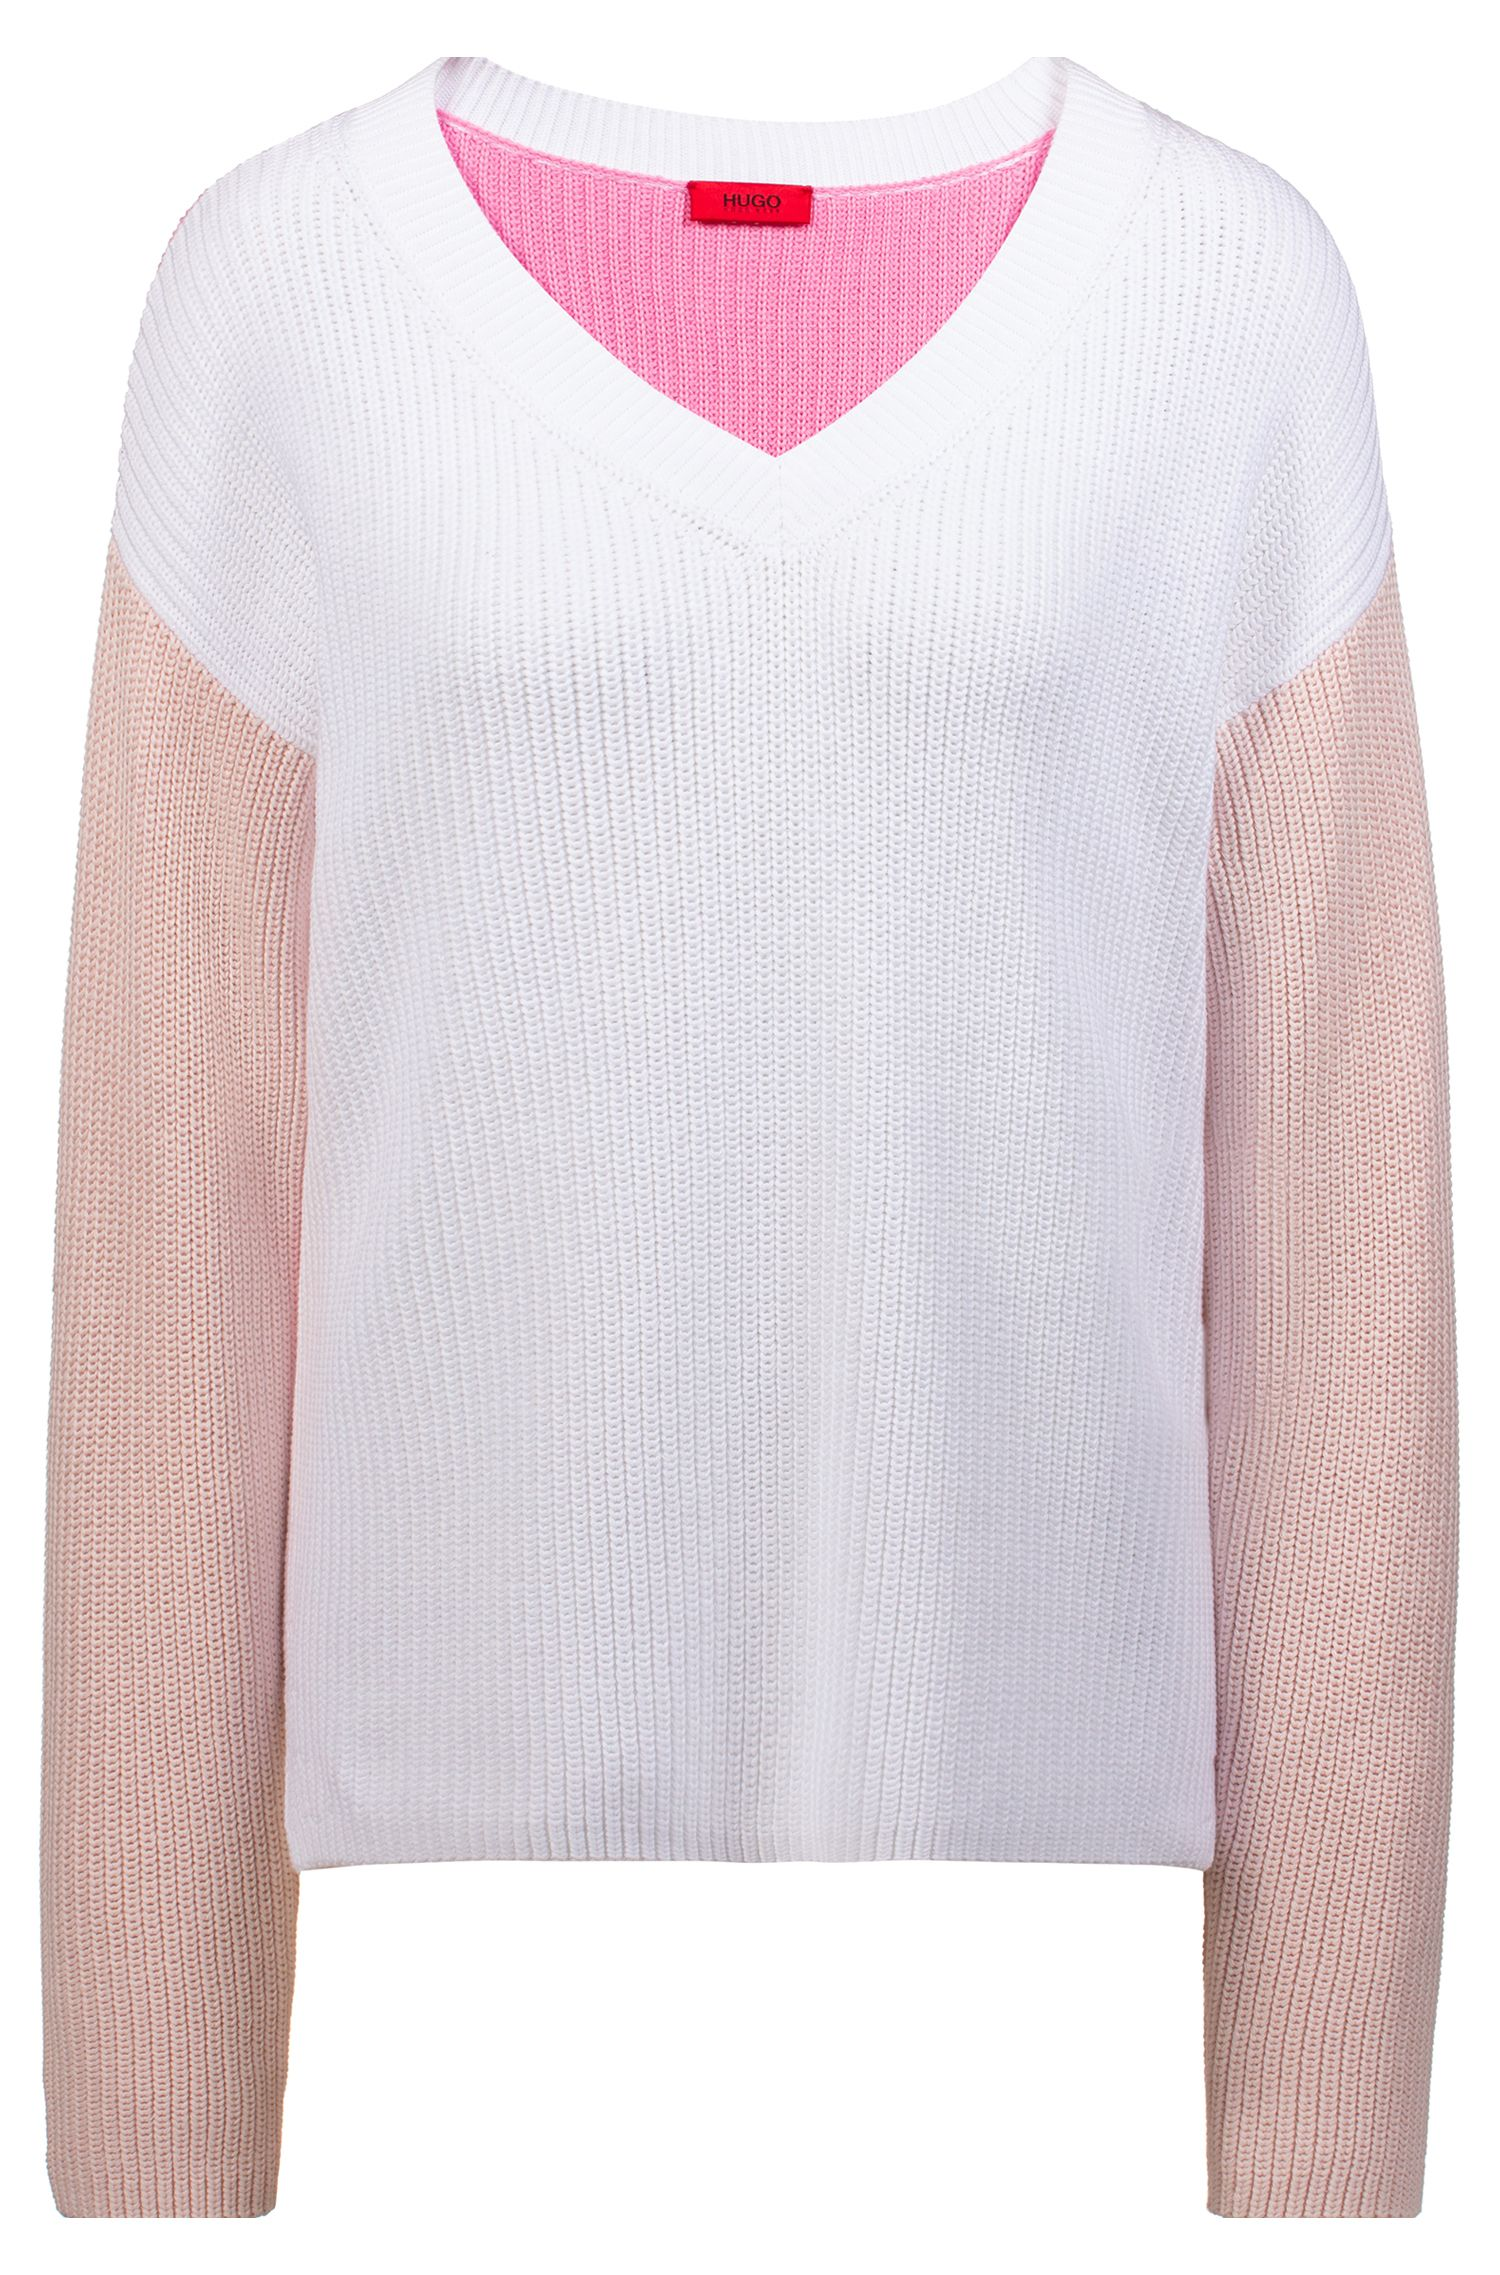 Ribbed colour-block sweater with V neckline, Patterned